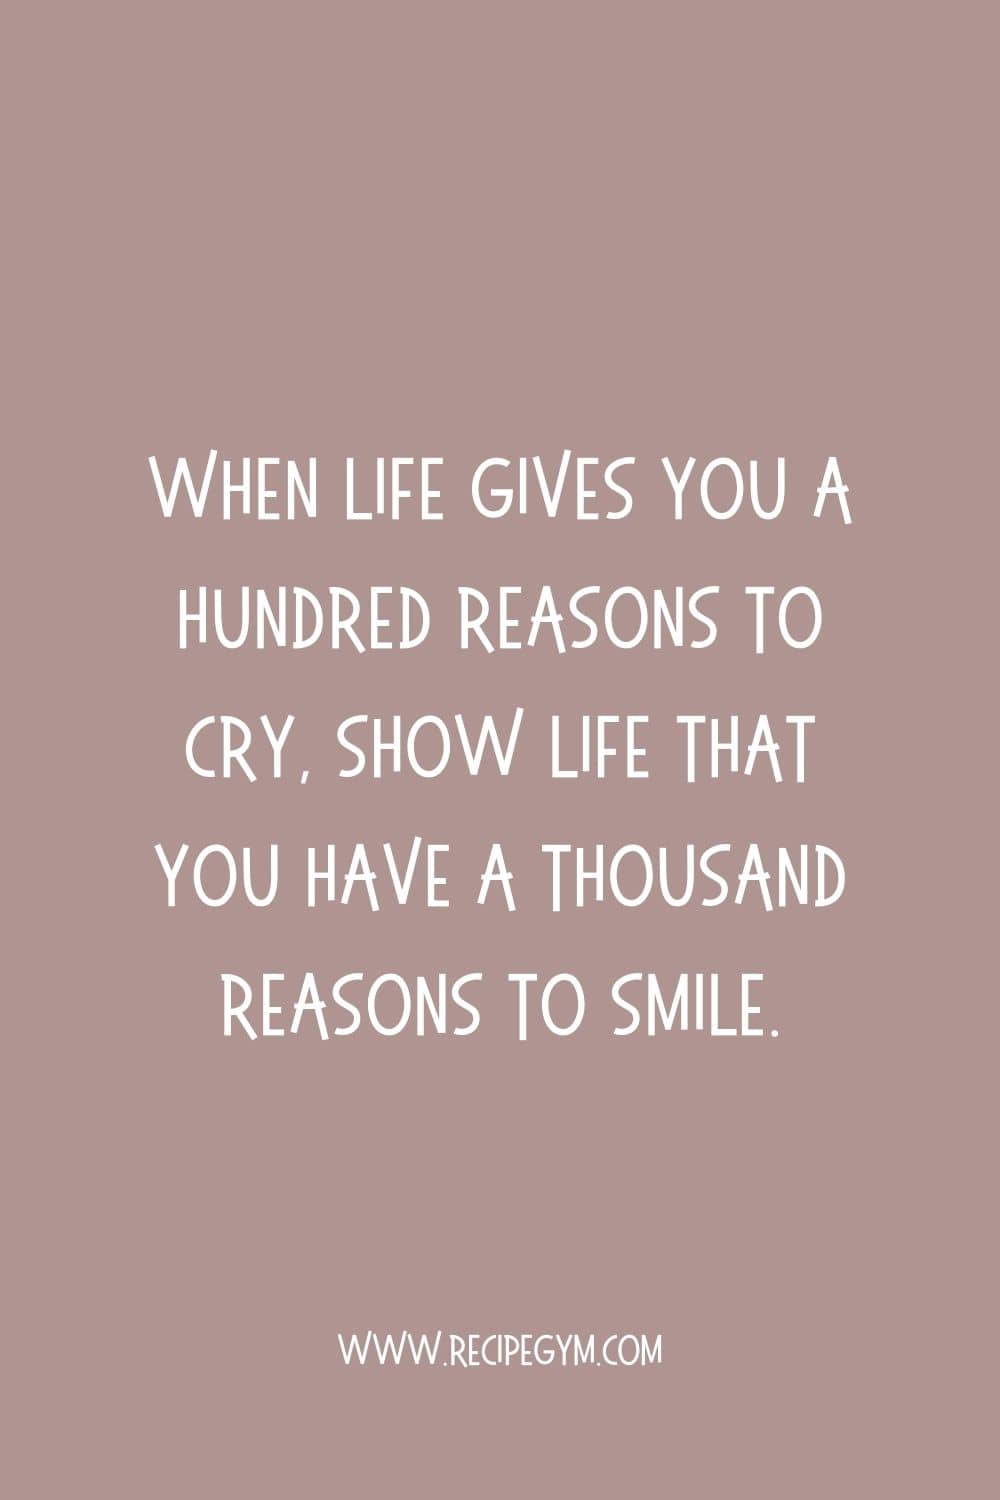 45 inspirational smile quotes that will make your day   faith fitness food